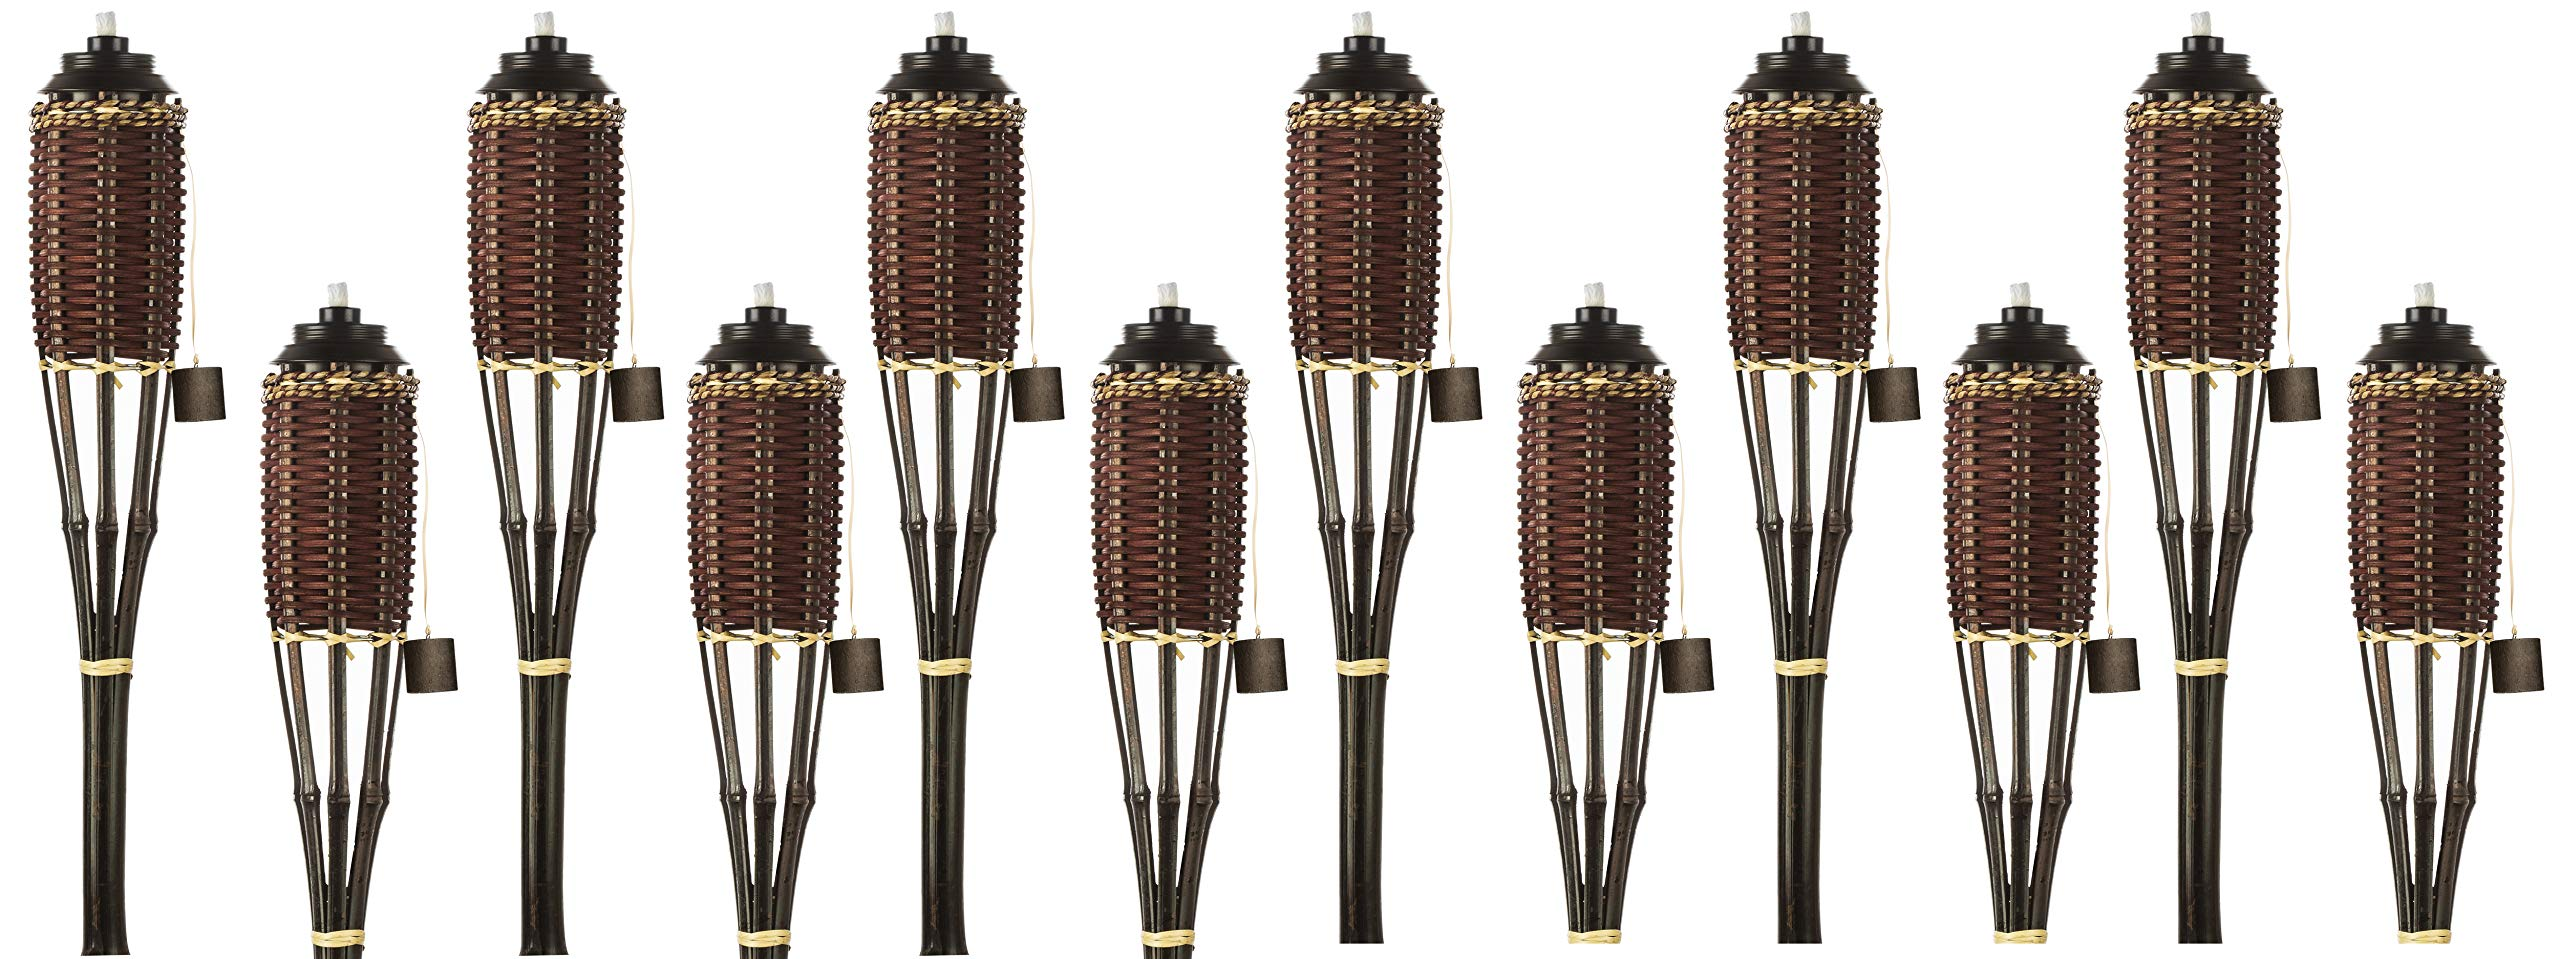 5 Star North Brown Weave Bamboo Torches; Decorative Torches; Fiberglass Wicks; Extra-Large (16oz) Metal Canisters for Longer Lasting Burn; Stands 59'' Tall (12 Pack) by 5 Star North (Image #1)